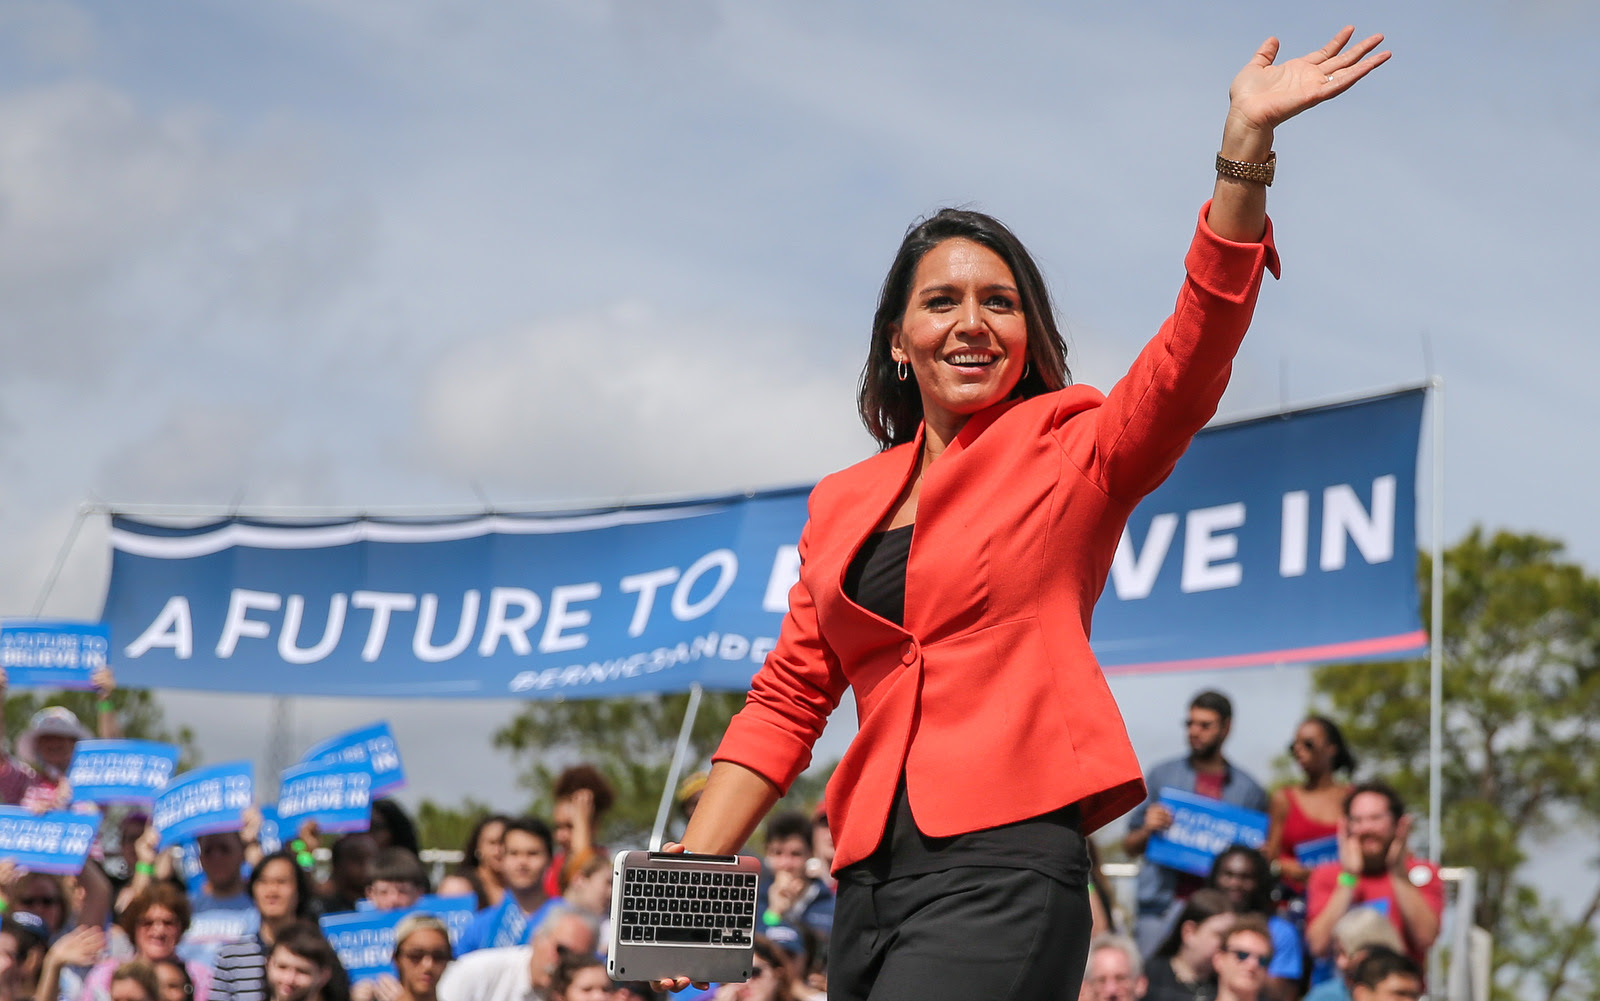 Rep. Tulsi Gabbard, D-Hi., arrives to introduce Democratic presidential candidate, Sen. Bernie Sanders, I-Vt., at a campaign rally at the University of Florida in Gainesville, Fla., March 10, 2016. (AP/Gary McCullough)